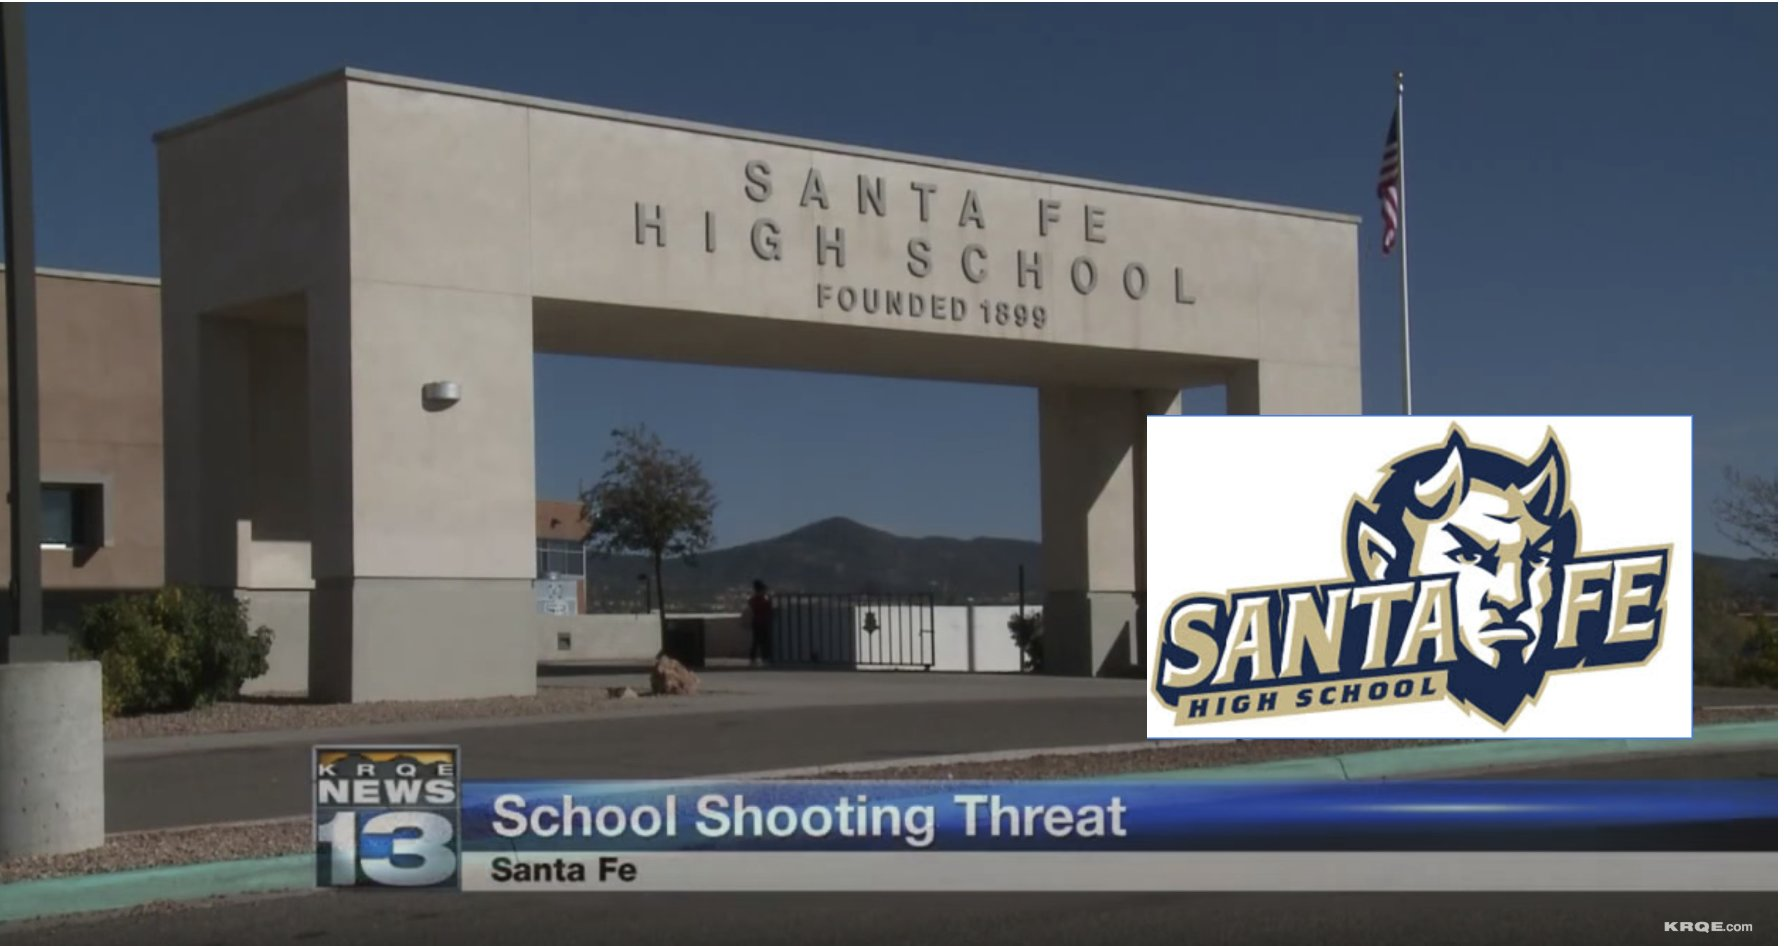 Police arrested 3 Santa Fe High students over school shooting threat 6 months ago in NEW MEXICO!!!